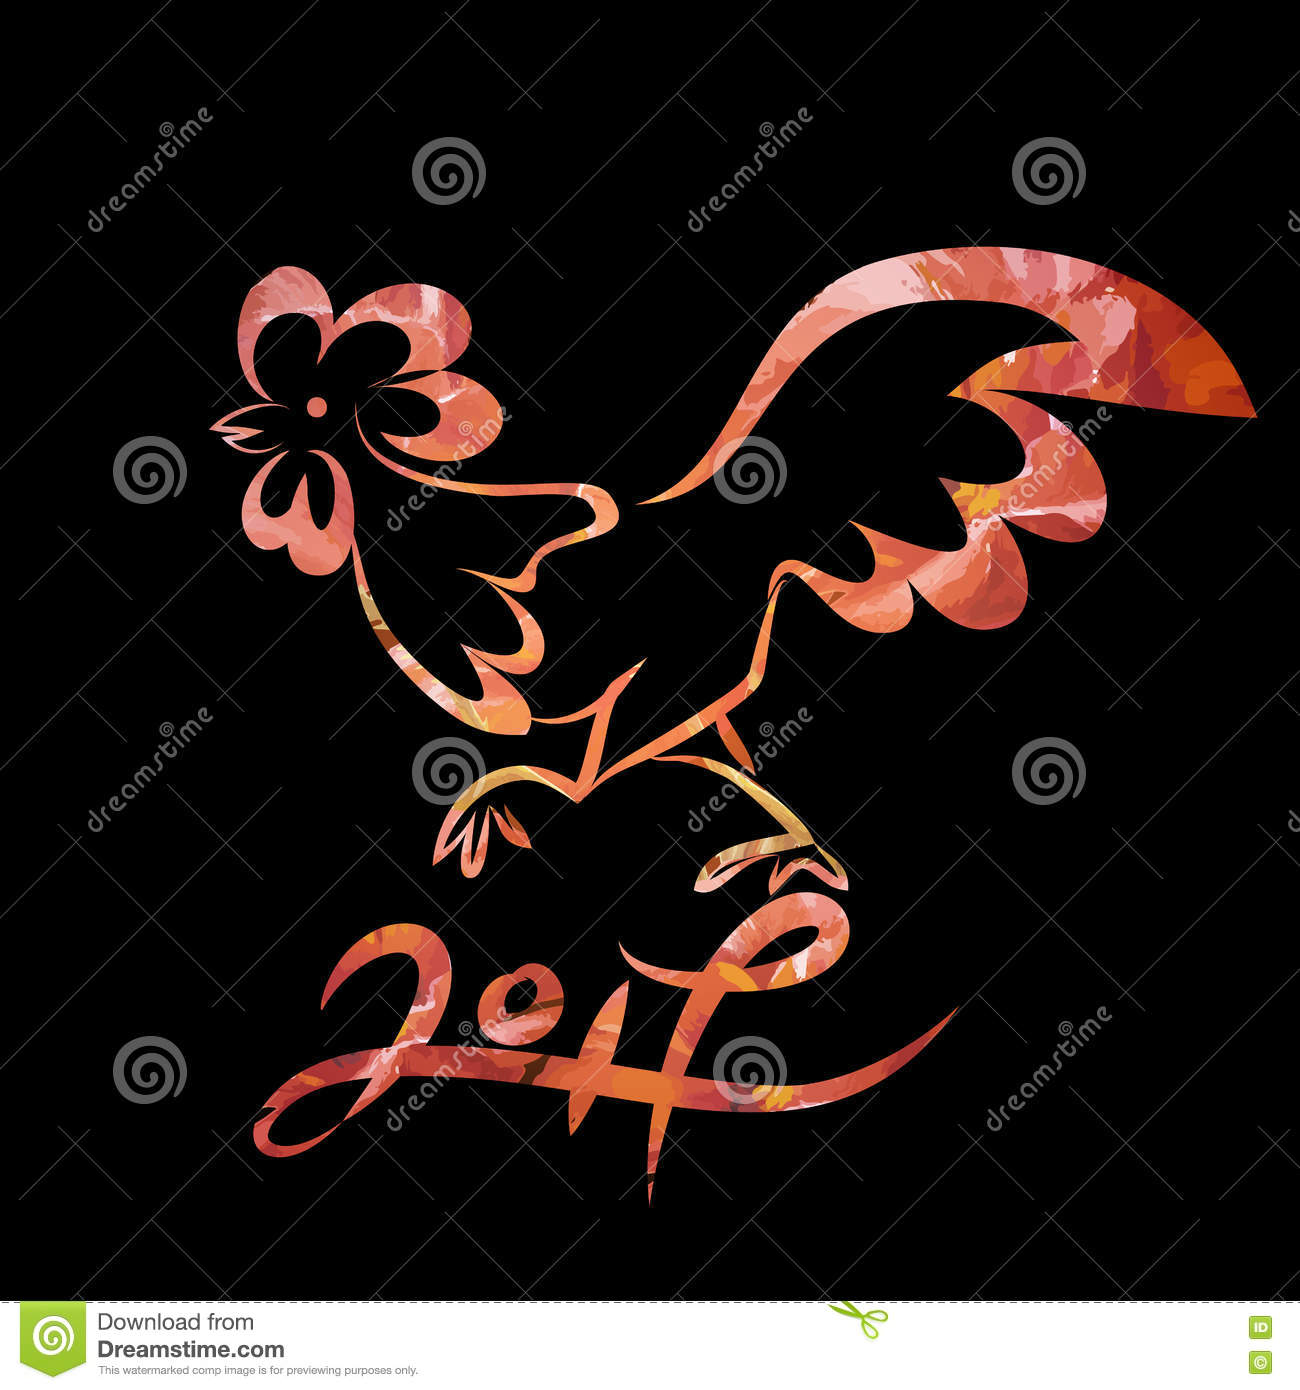 download rooster chinese new year design graphic stock vector illustration of border sketch